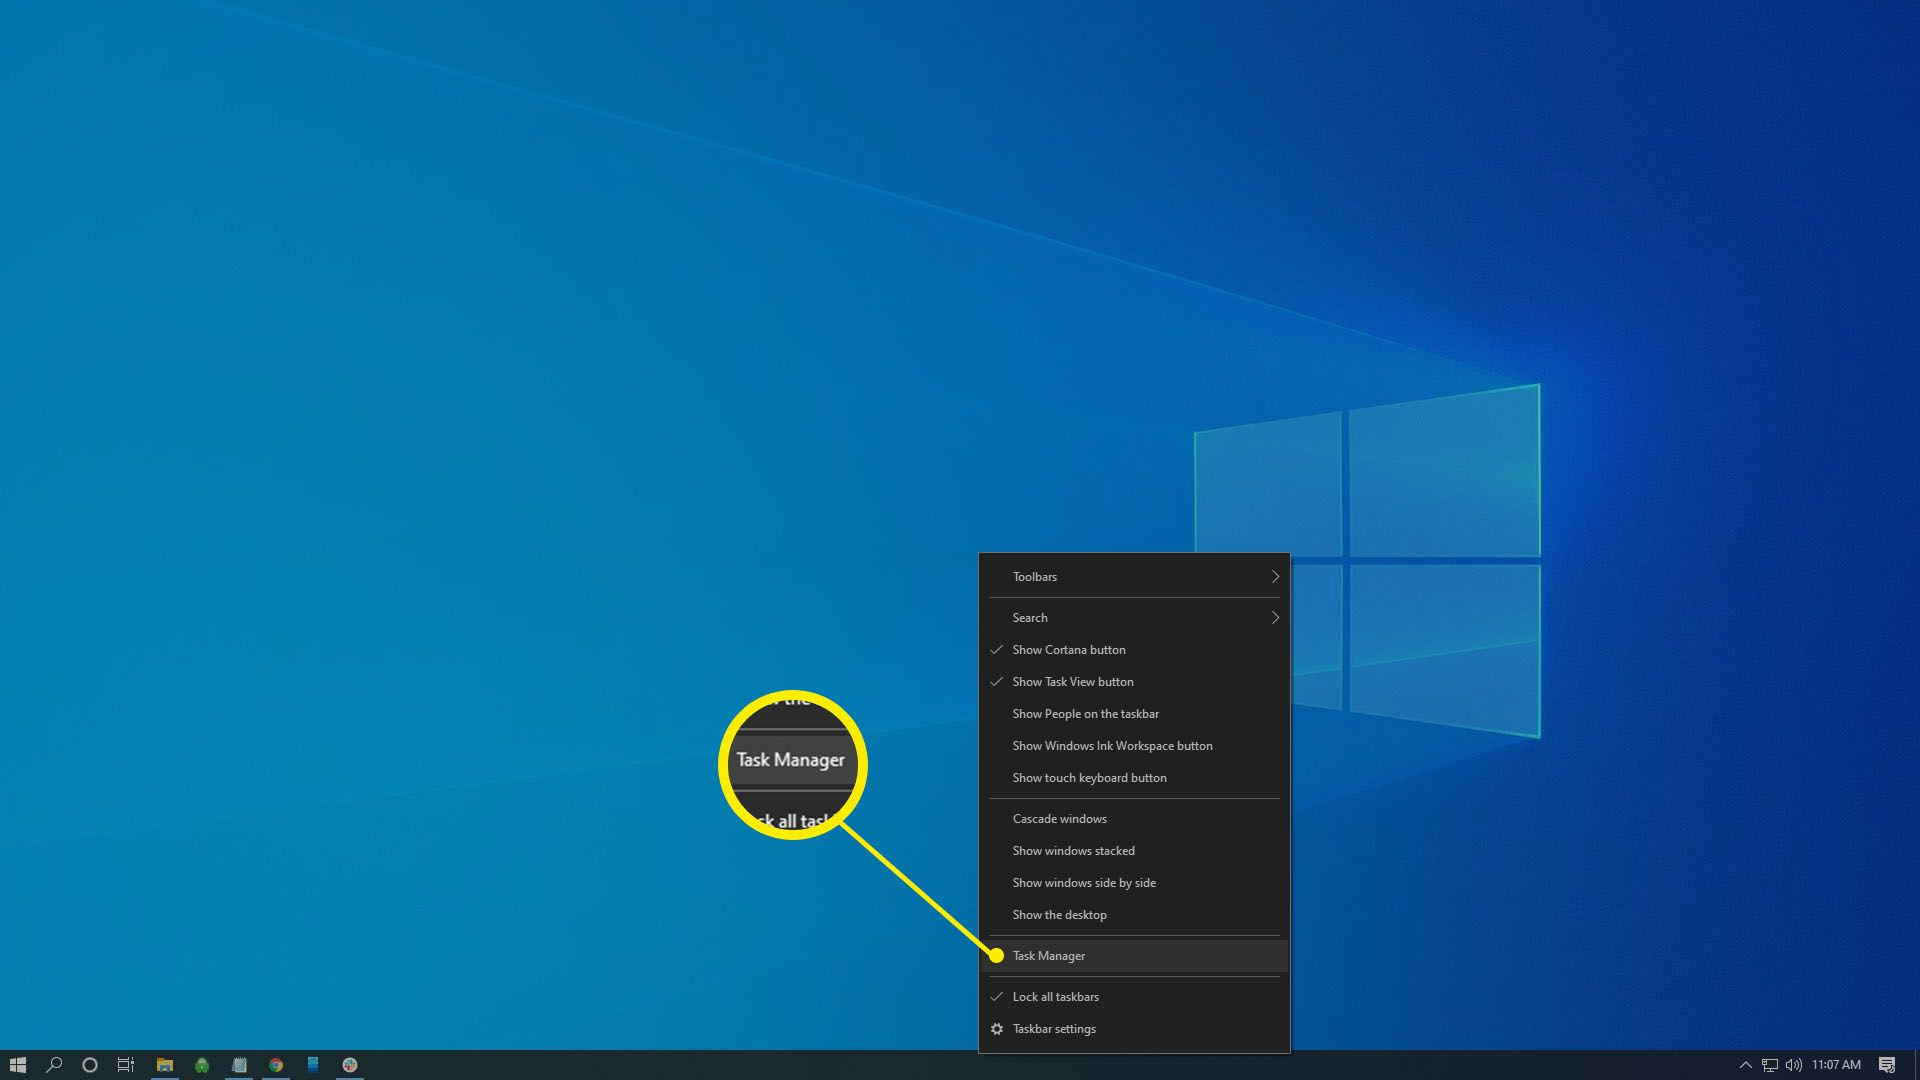 Right-click the Windows Taskbar at the bottom of your screen, then select Task Manager.